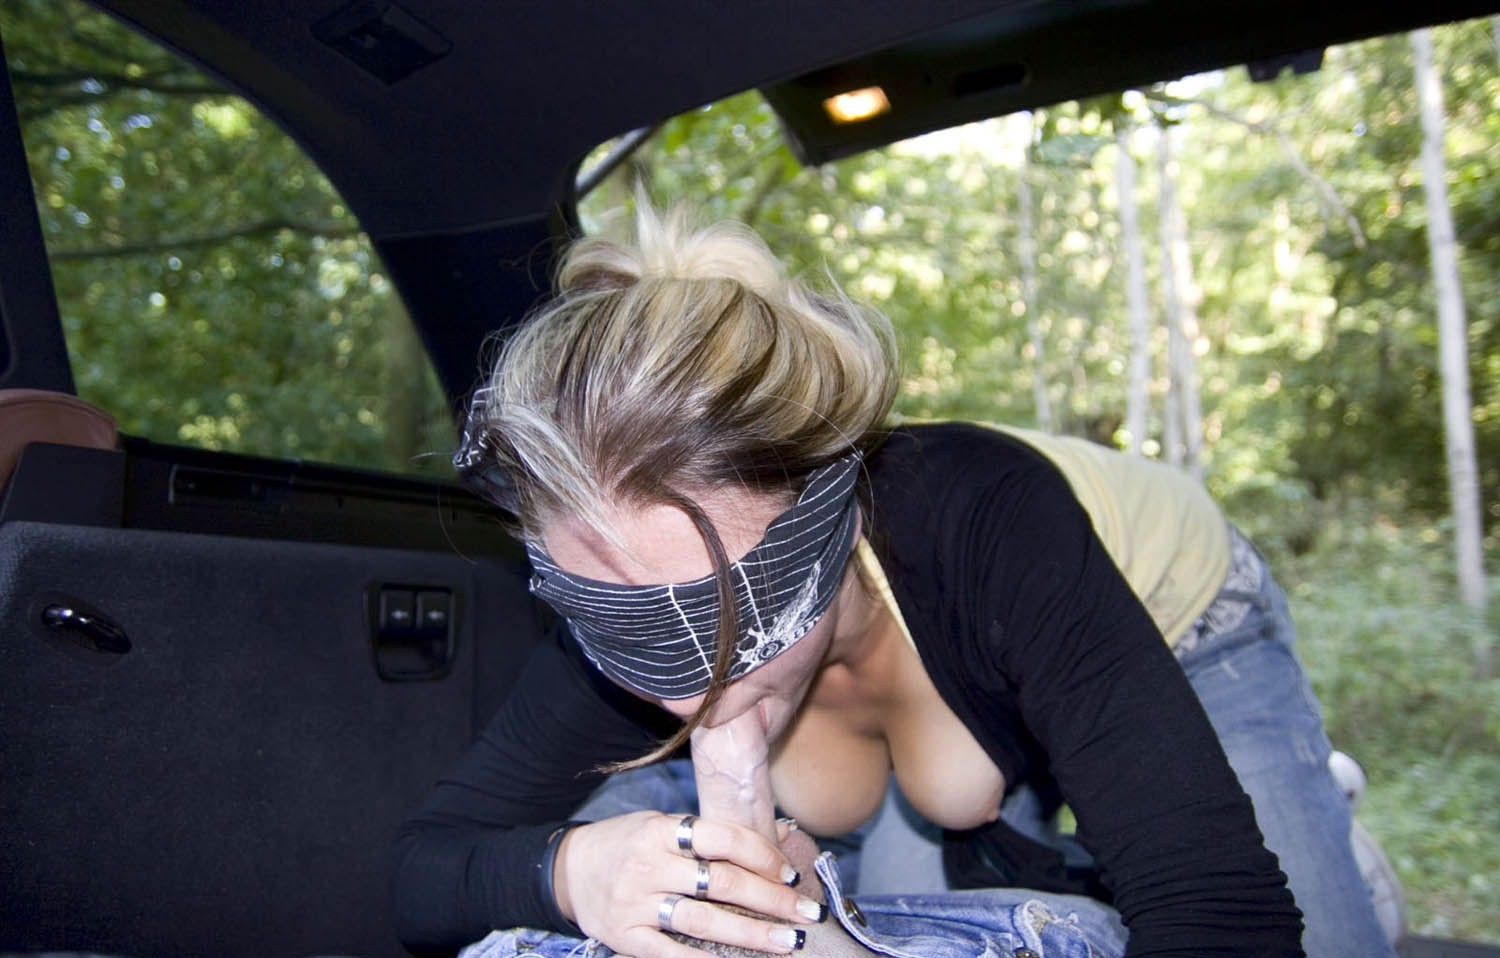 15 facials one after another huge cumshots totally ruined cum loving milf 9